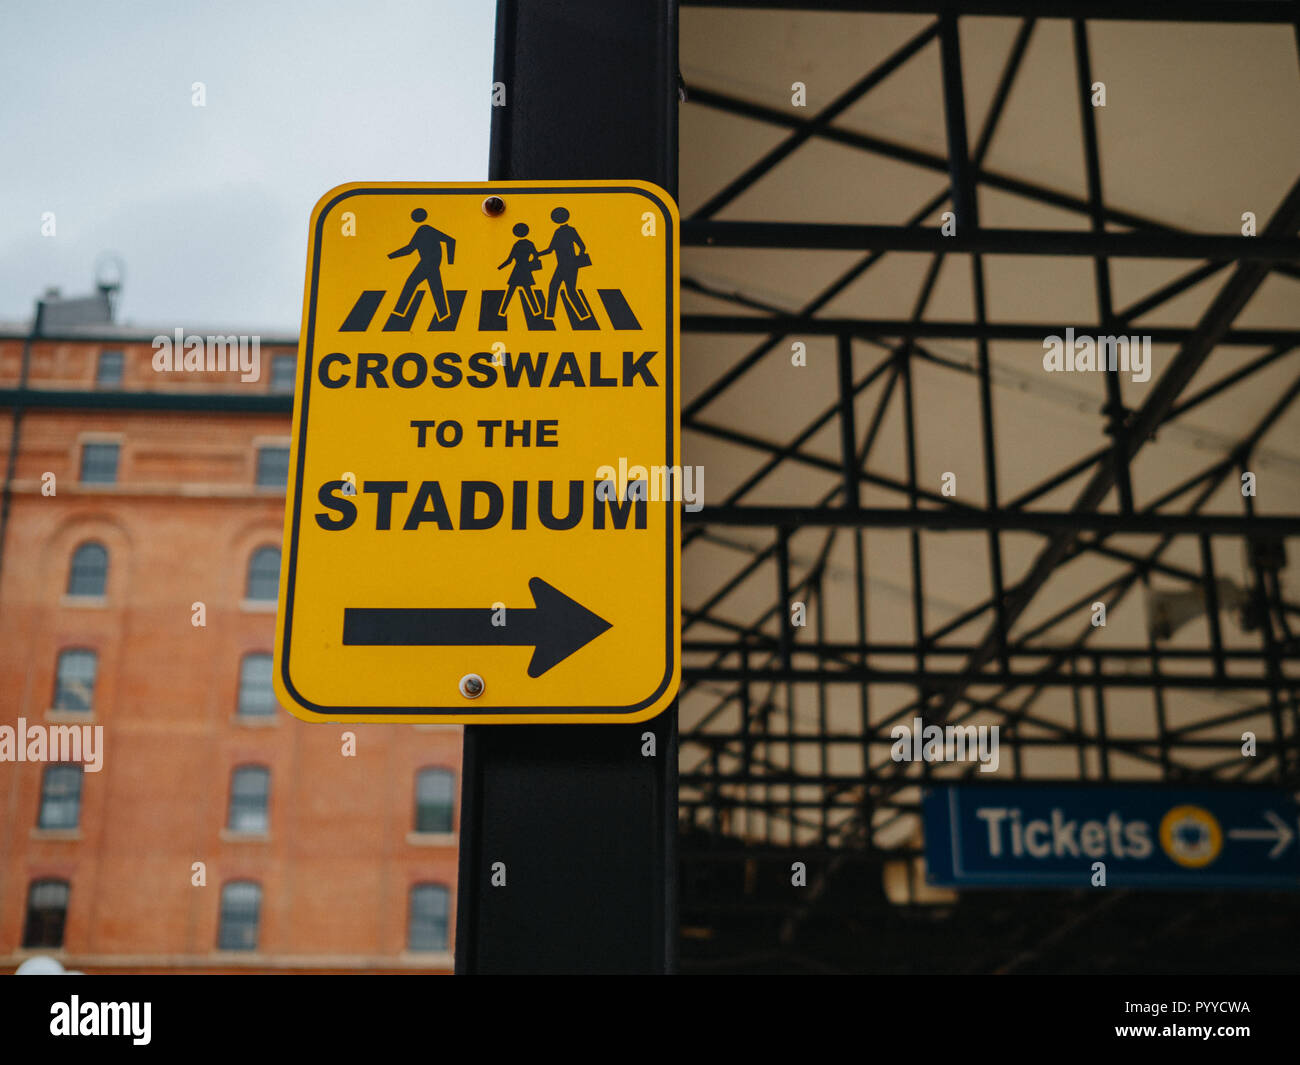 Yellow crosswalk to the stadium sign pointing to the right near a ballpark - Stock Image